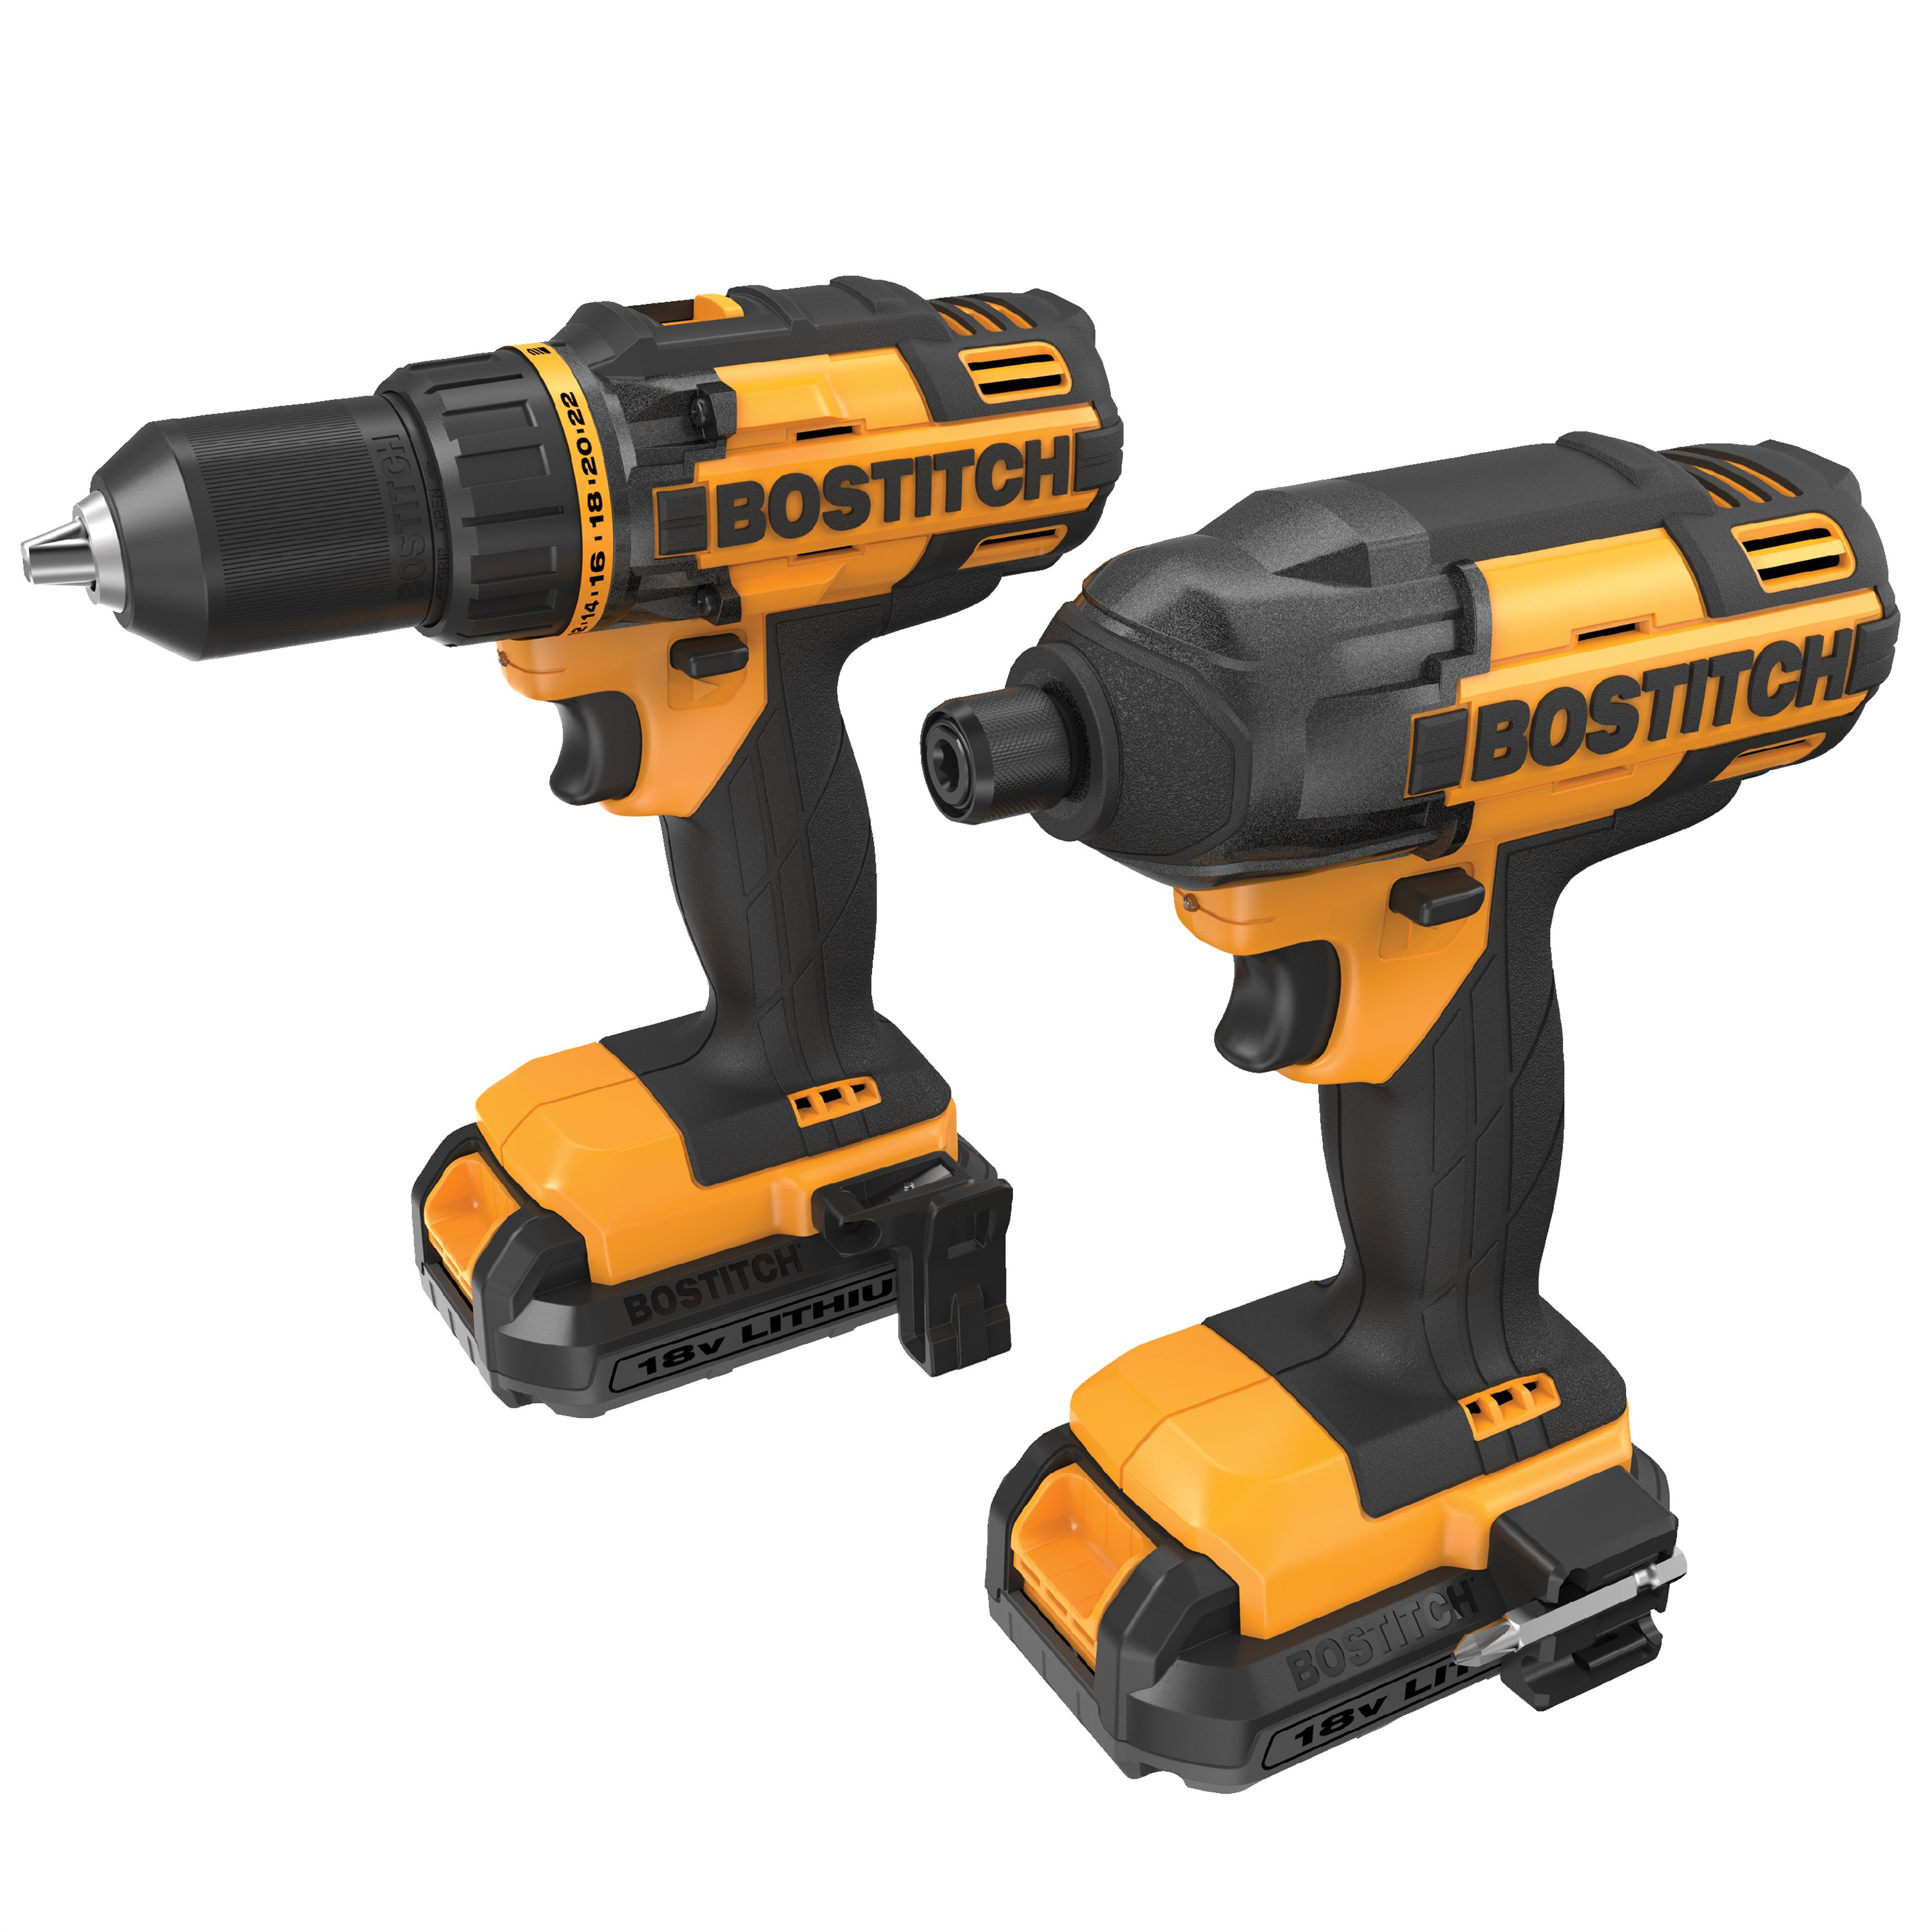 Bostitch BTCK411L2 18V Lithium 2 Tool Combo Kit